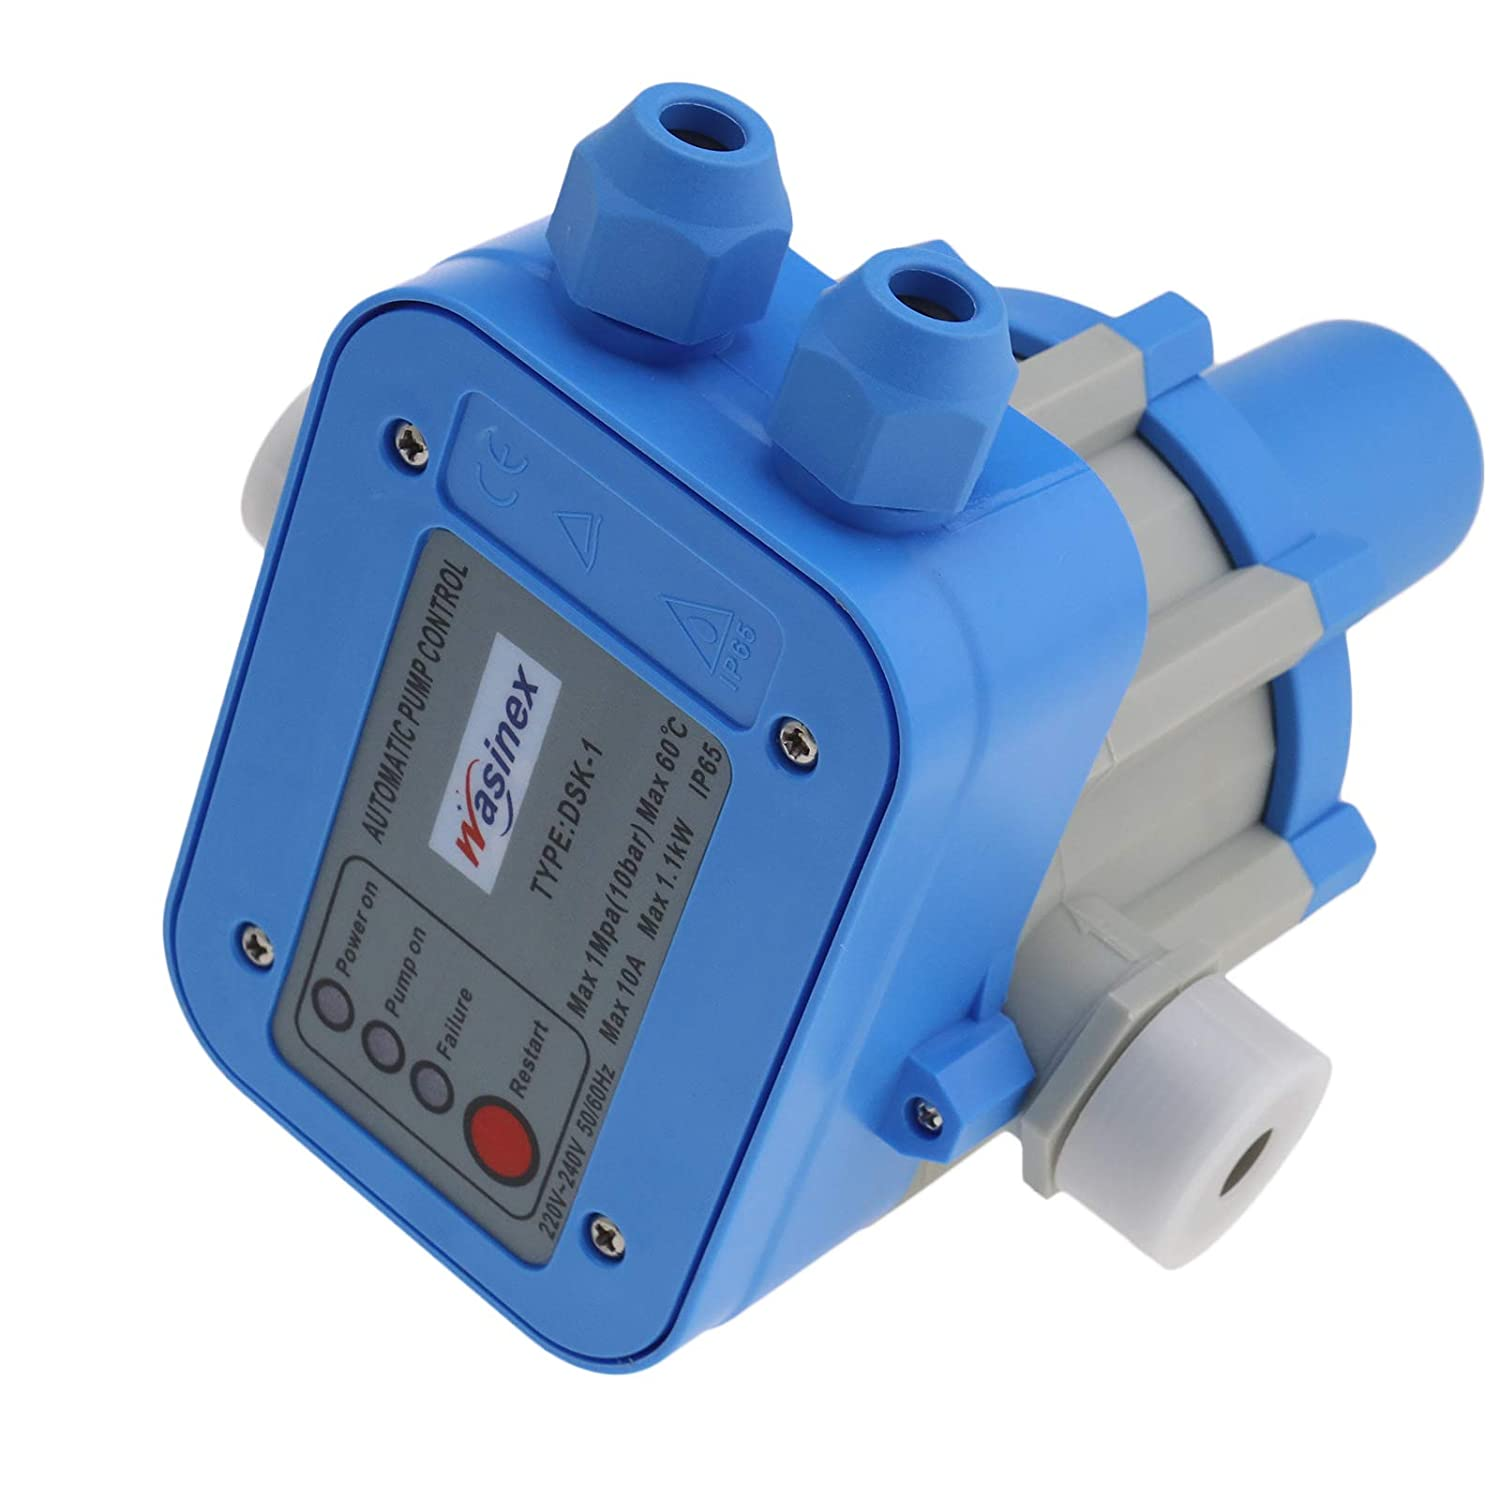 Creative Idear Automatic Pump Controller Pressure Control Electronic Switch for Water